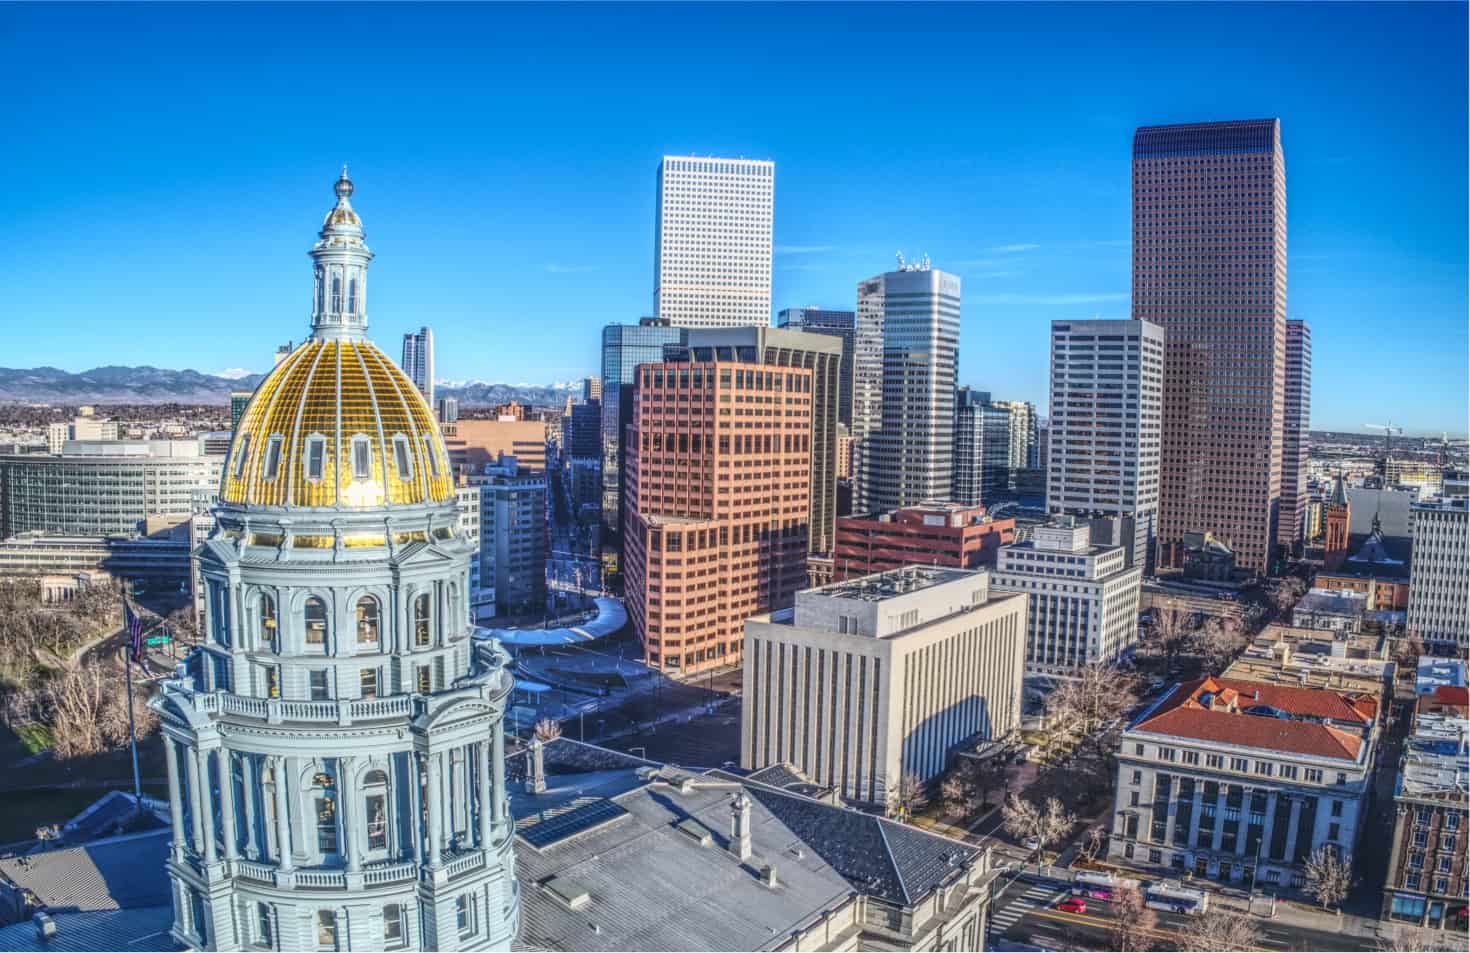 arial view of the capital building in Denver